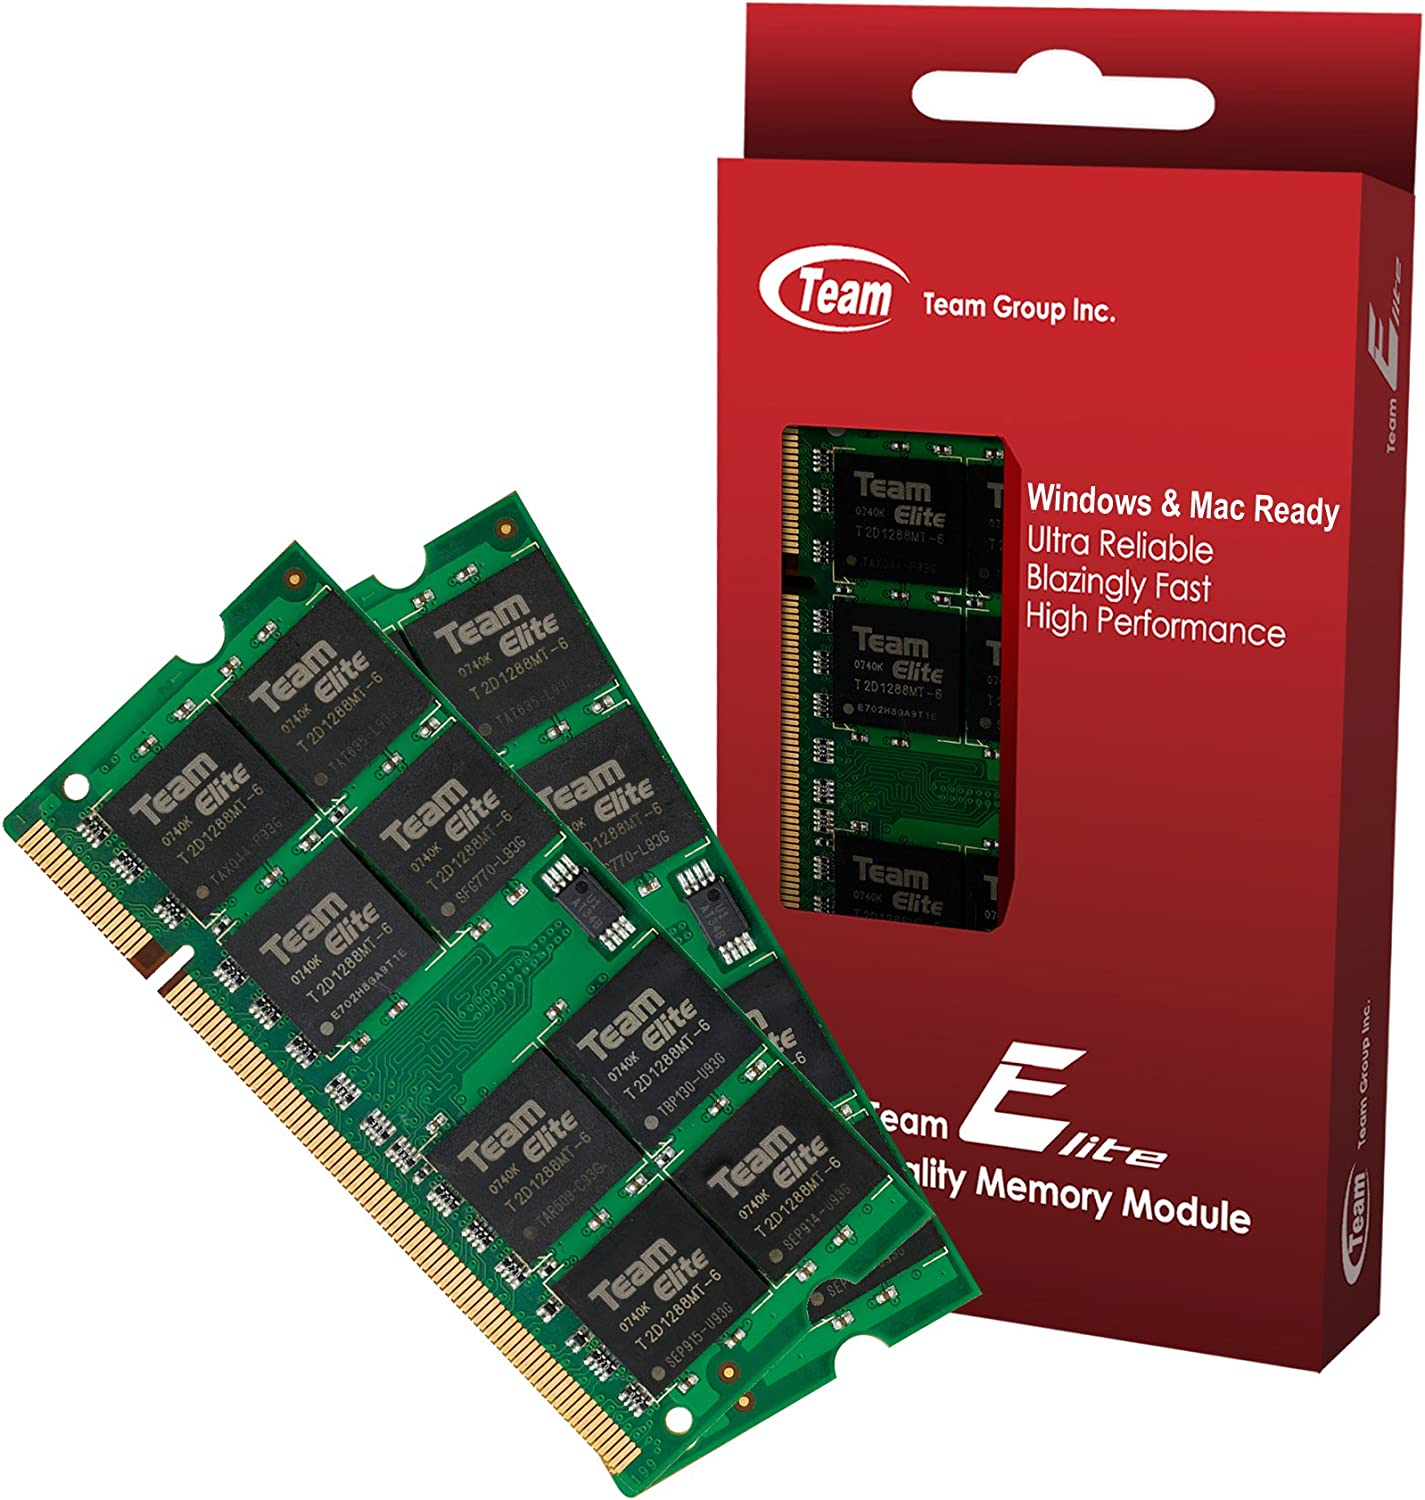 2GB (1GBx2) Team High Performance Memory RAM Upgrade For HP - Compaq HP 2133 Mini-Note PC KR922UT KR939UT KR948UT Netbook. The Memory Kit comes with Life Time Warranty. 81y5oLp2BZlL